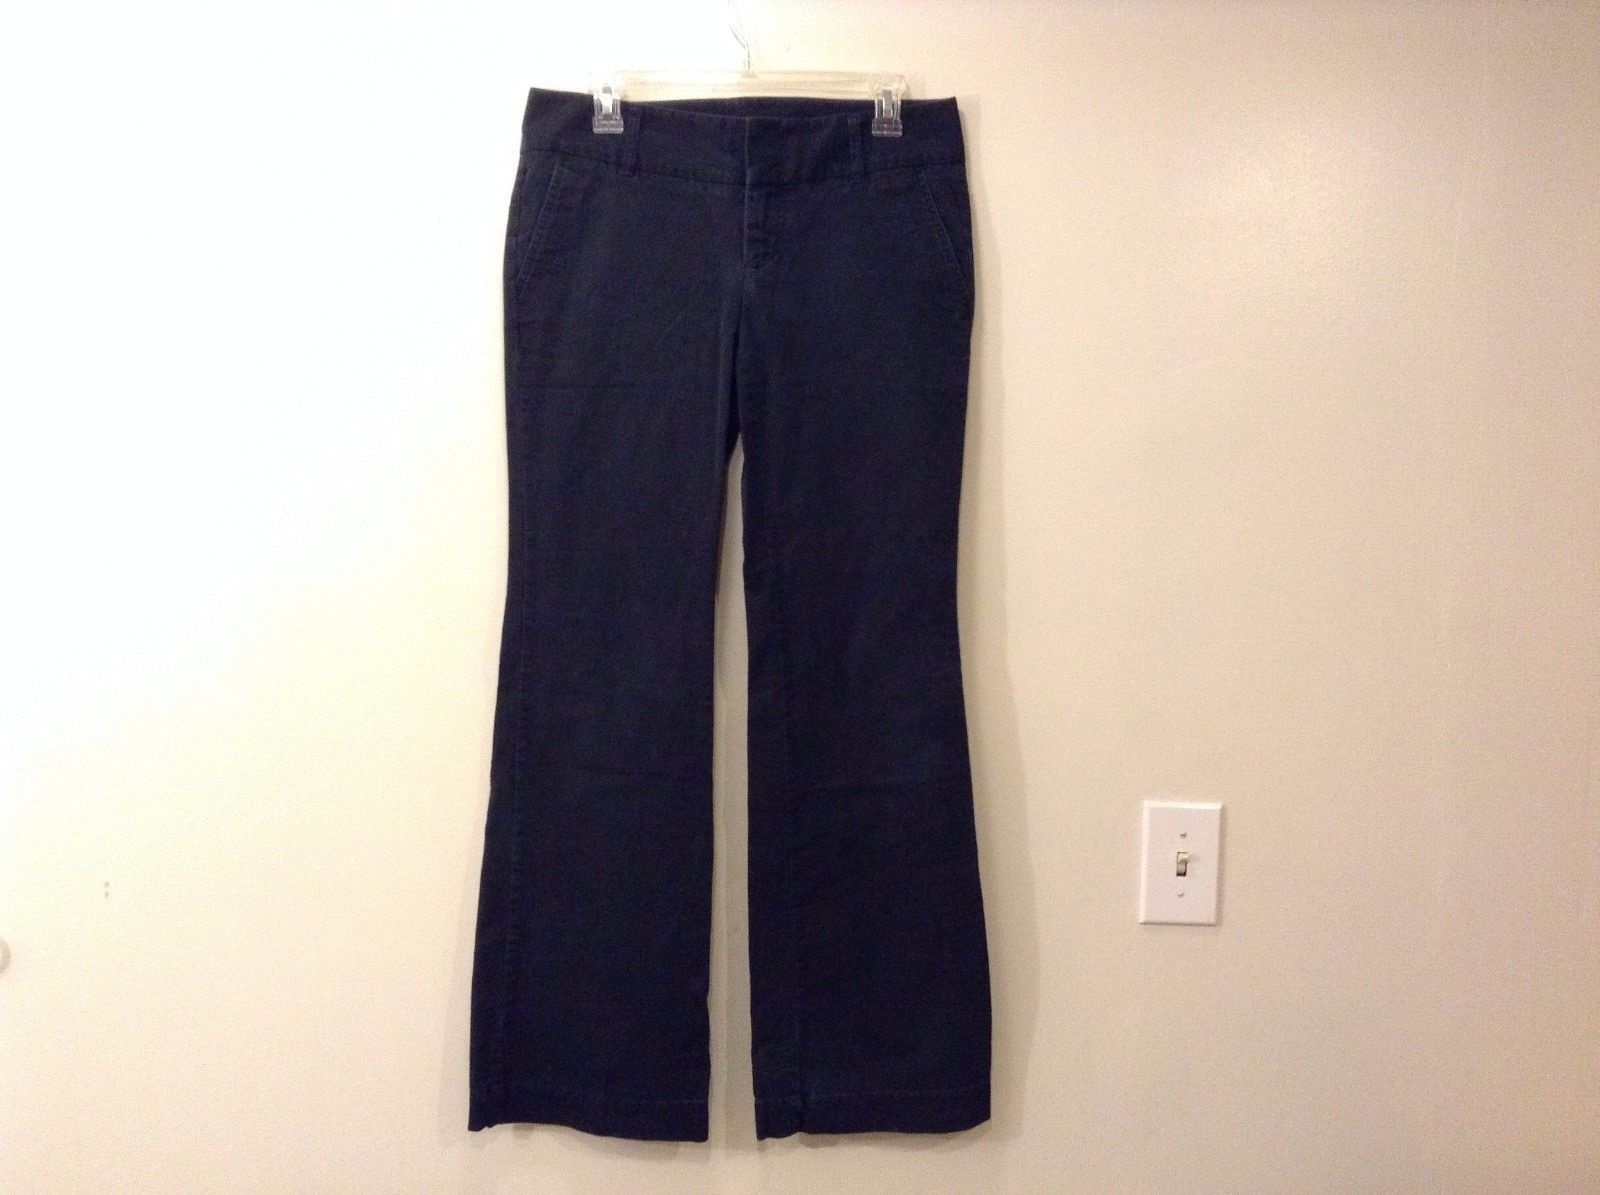 Express Black Jean Pants Size 8 Slightly Flare Bootcut Leg 97% Cotton 3% Spandex